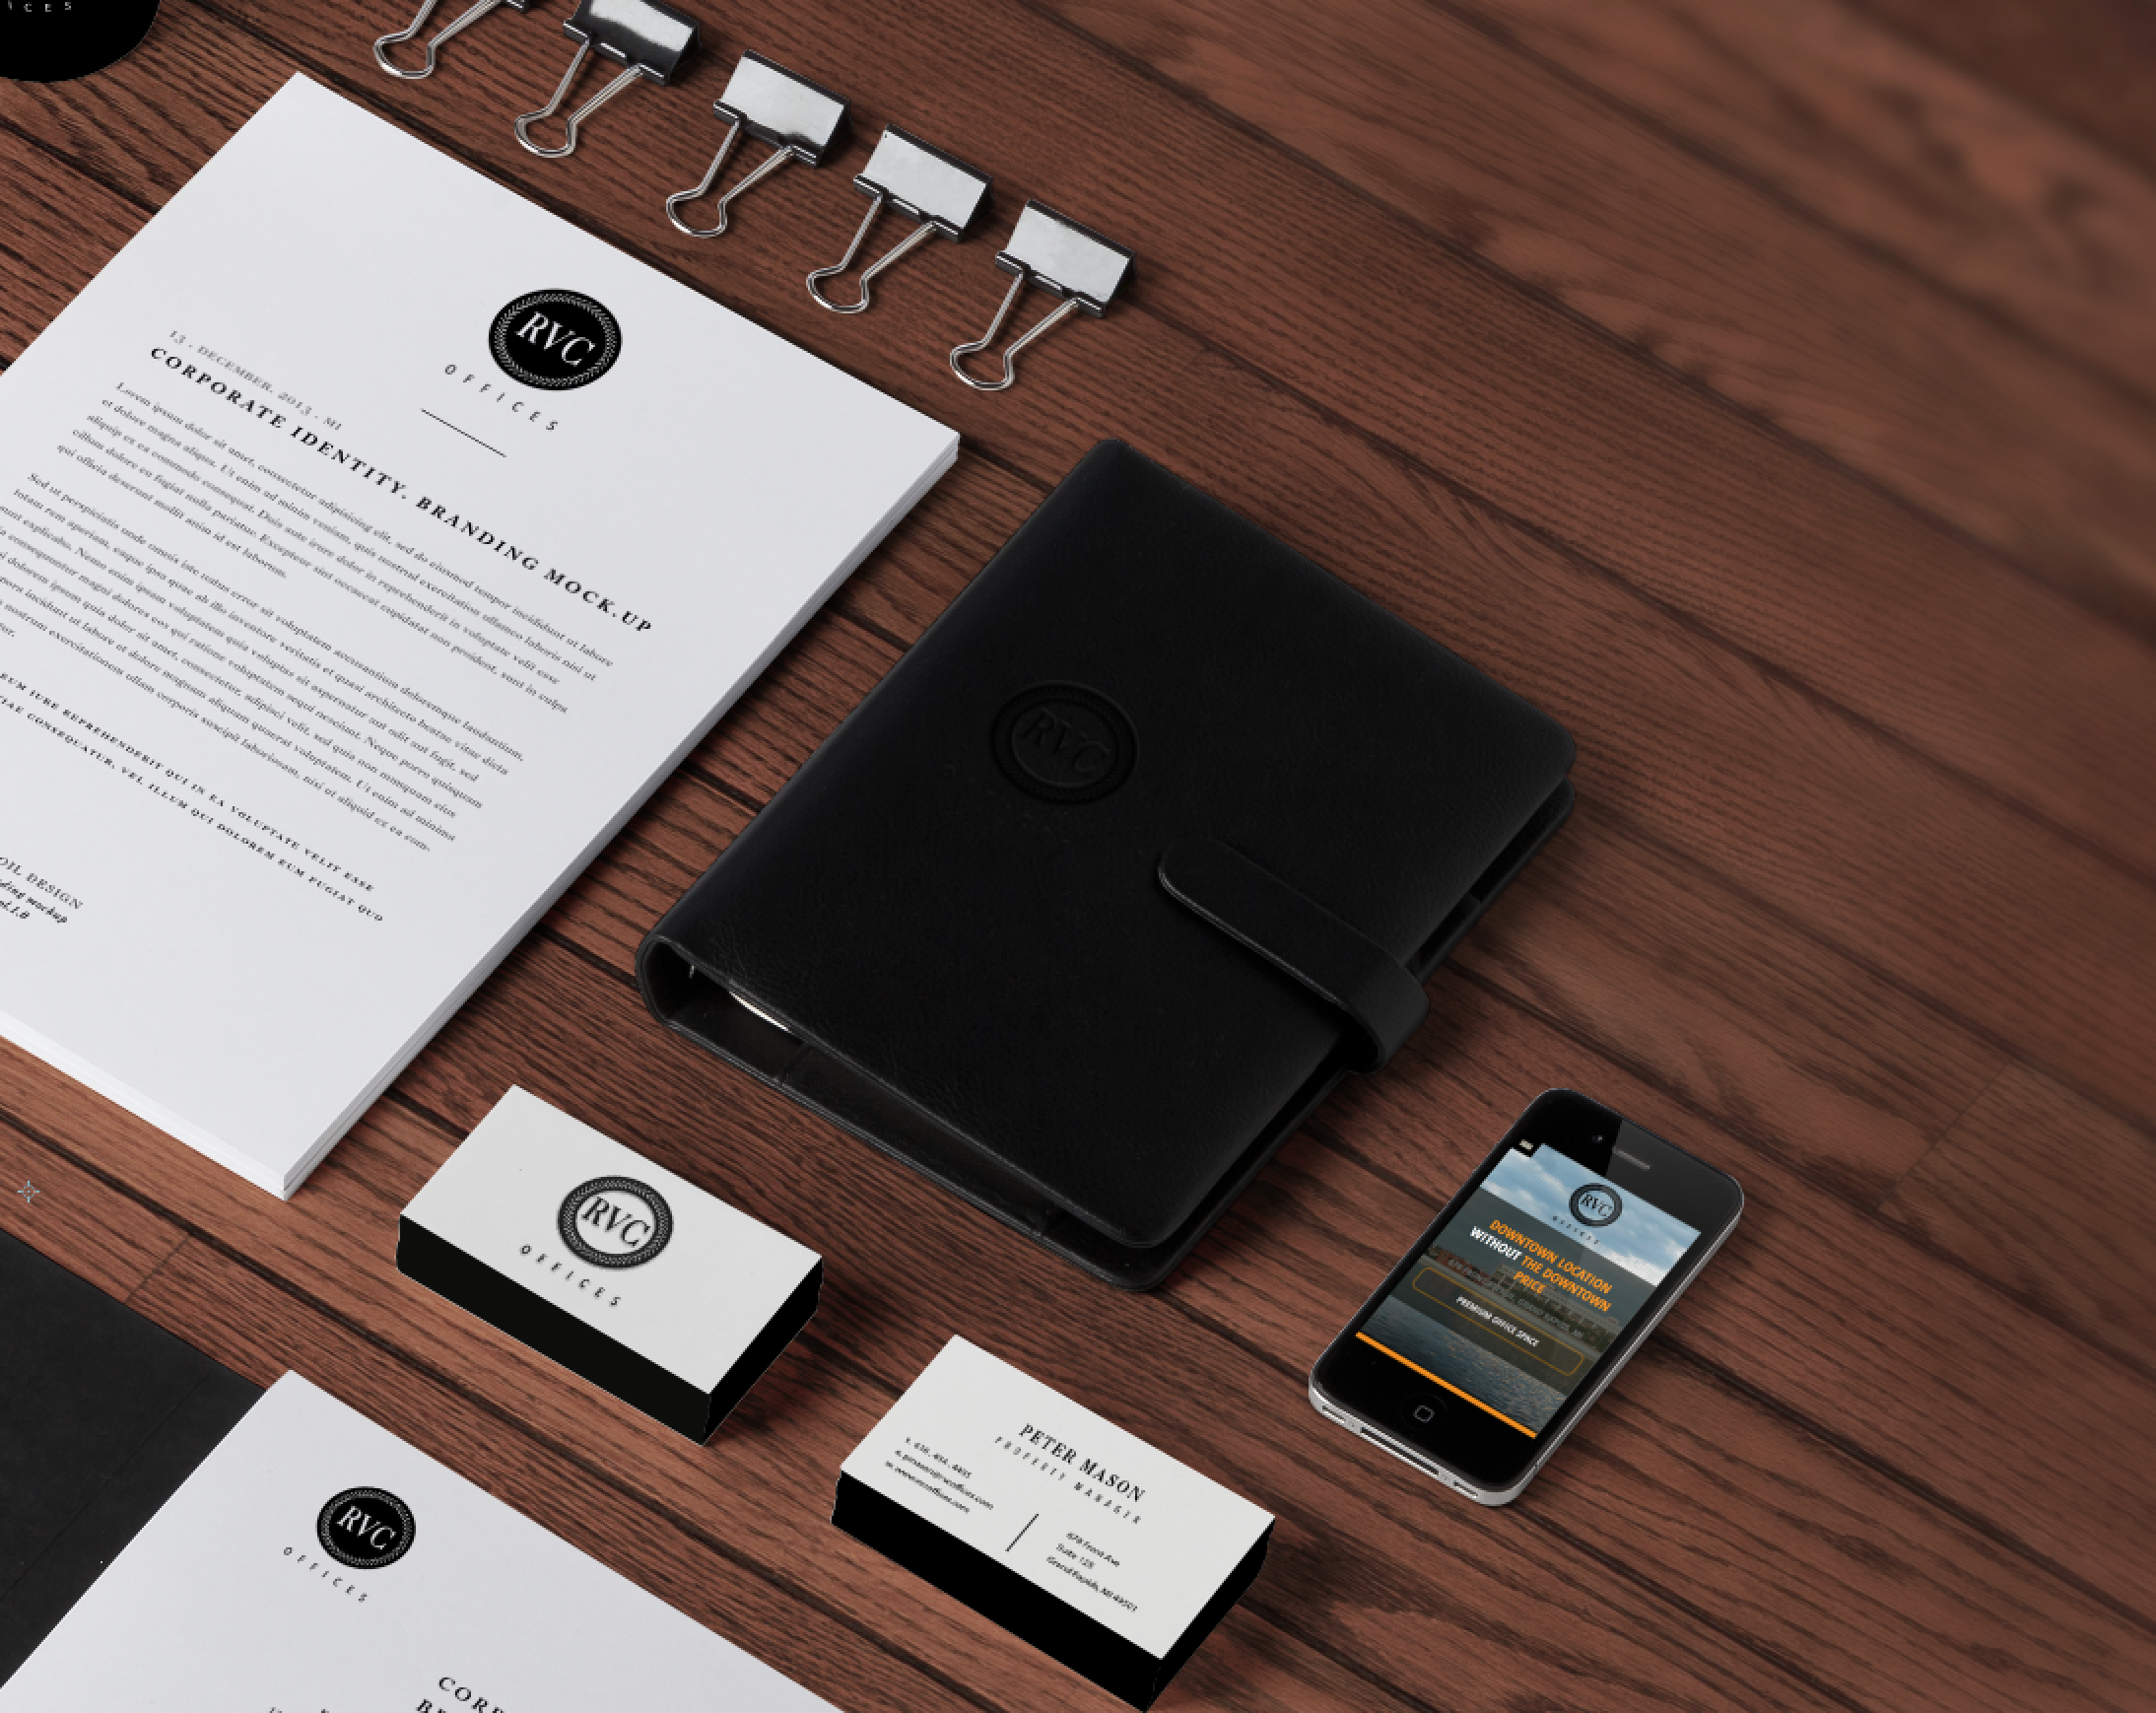 Branding identity mock up designed by Xoil Design